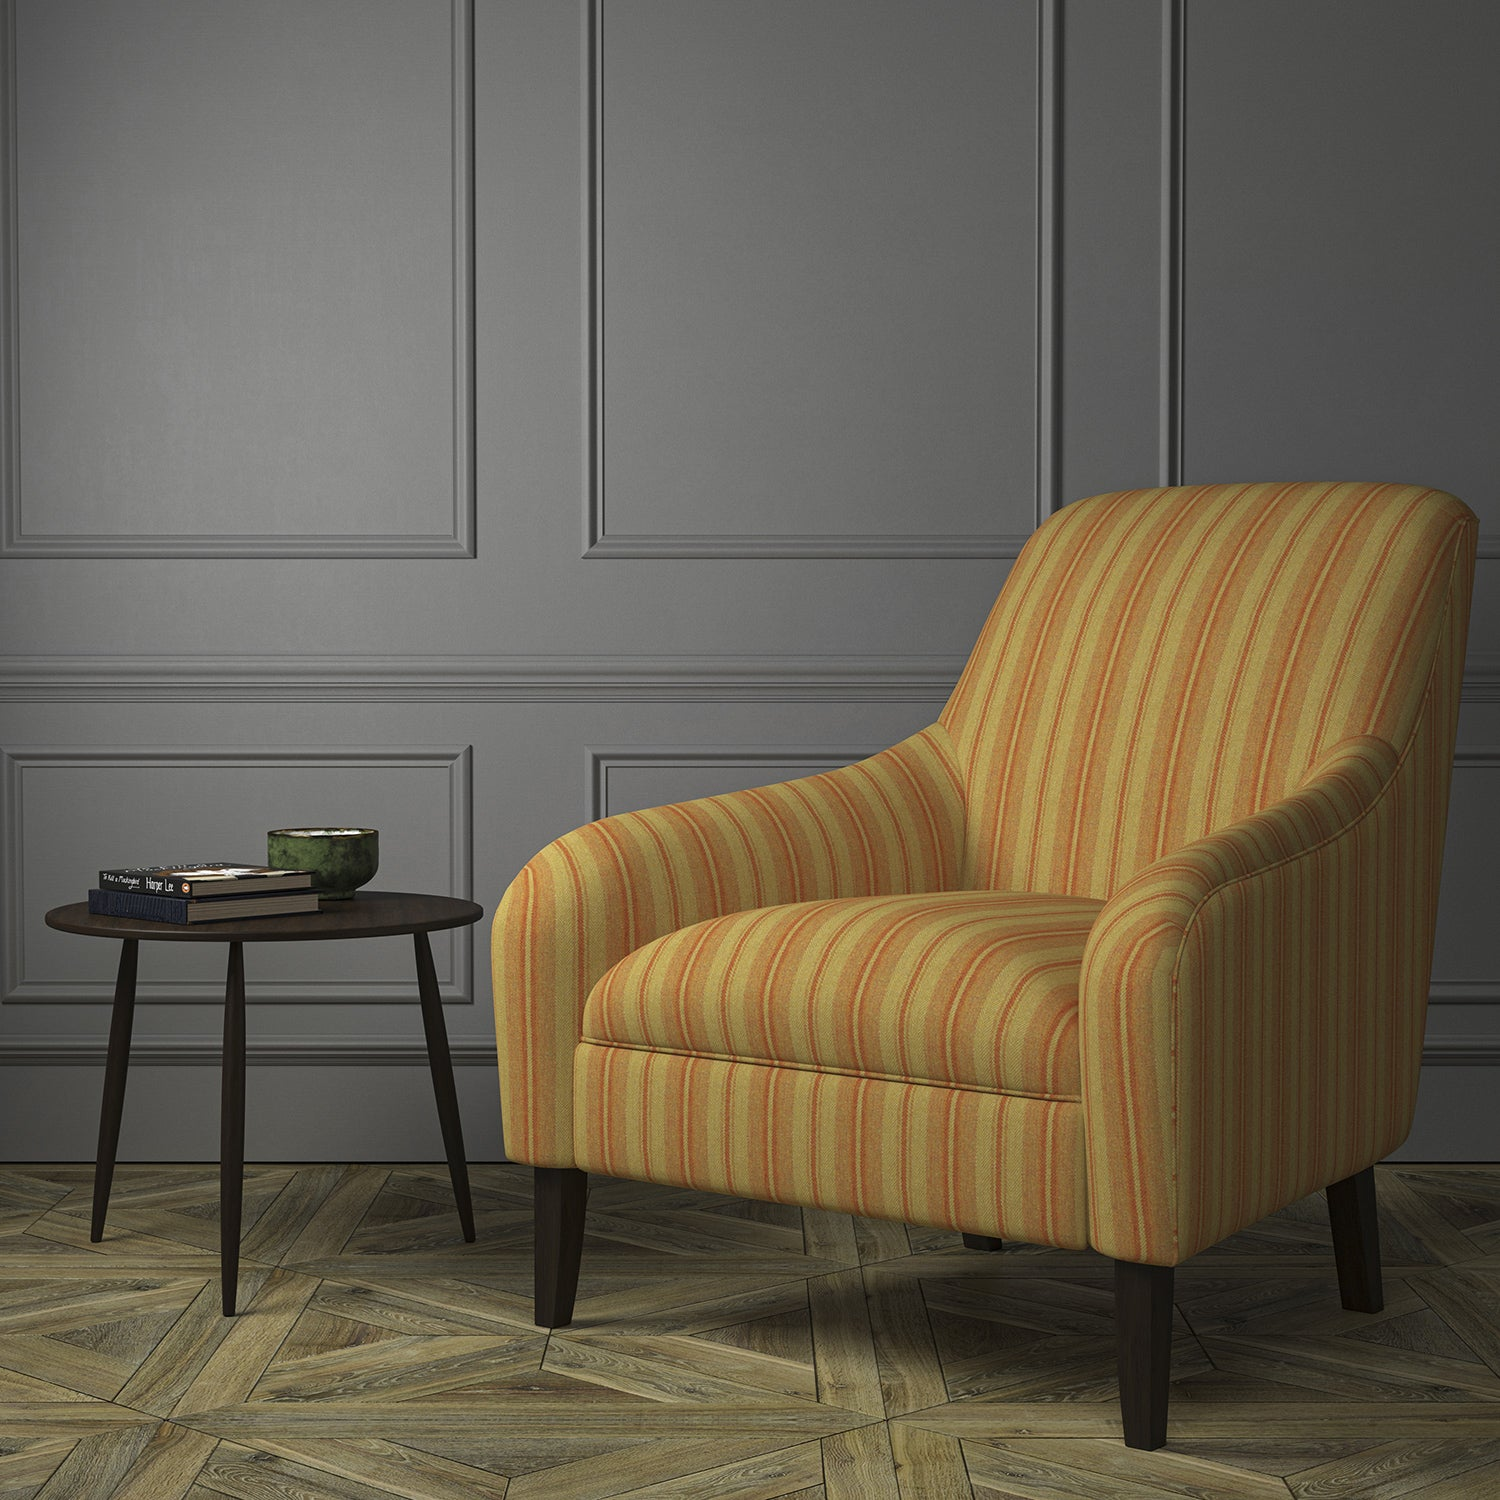 Chair upholstered in a luxury Scottish orange and dark neutral wool striped upholstery fabric